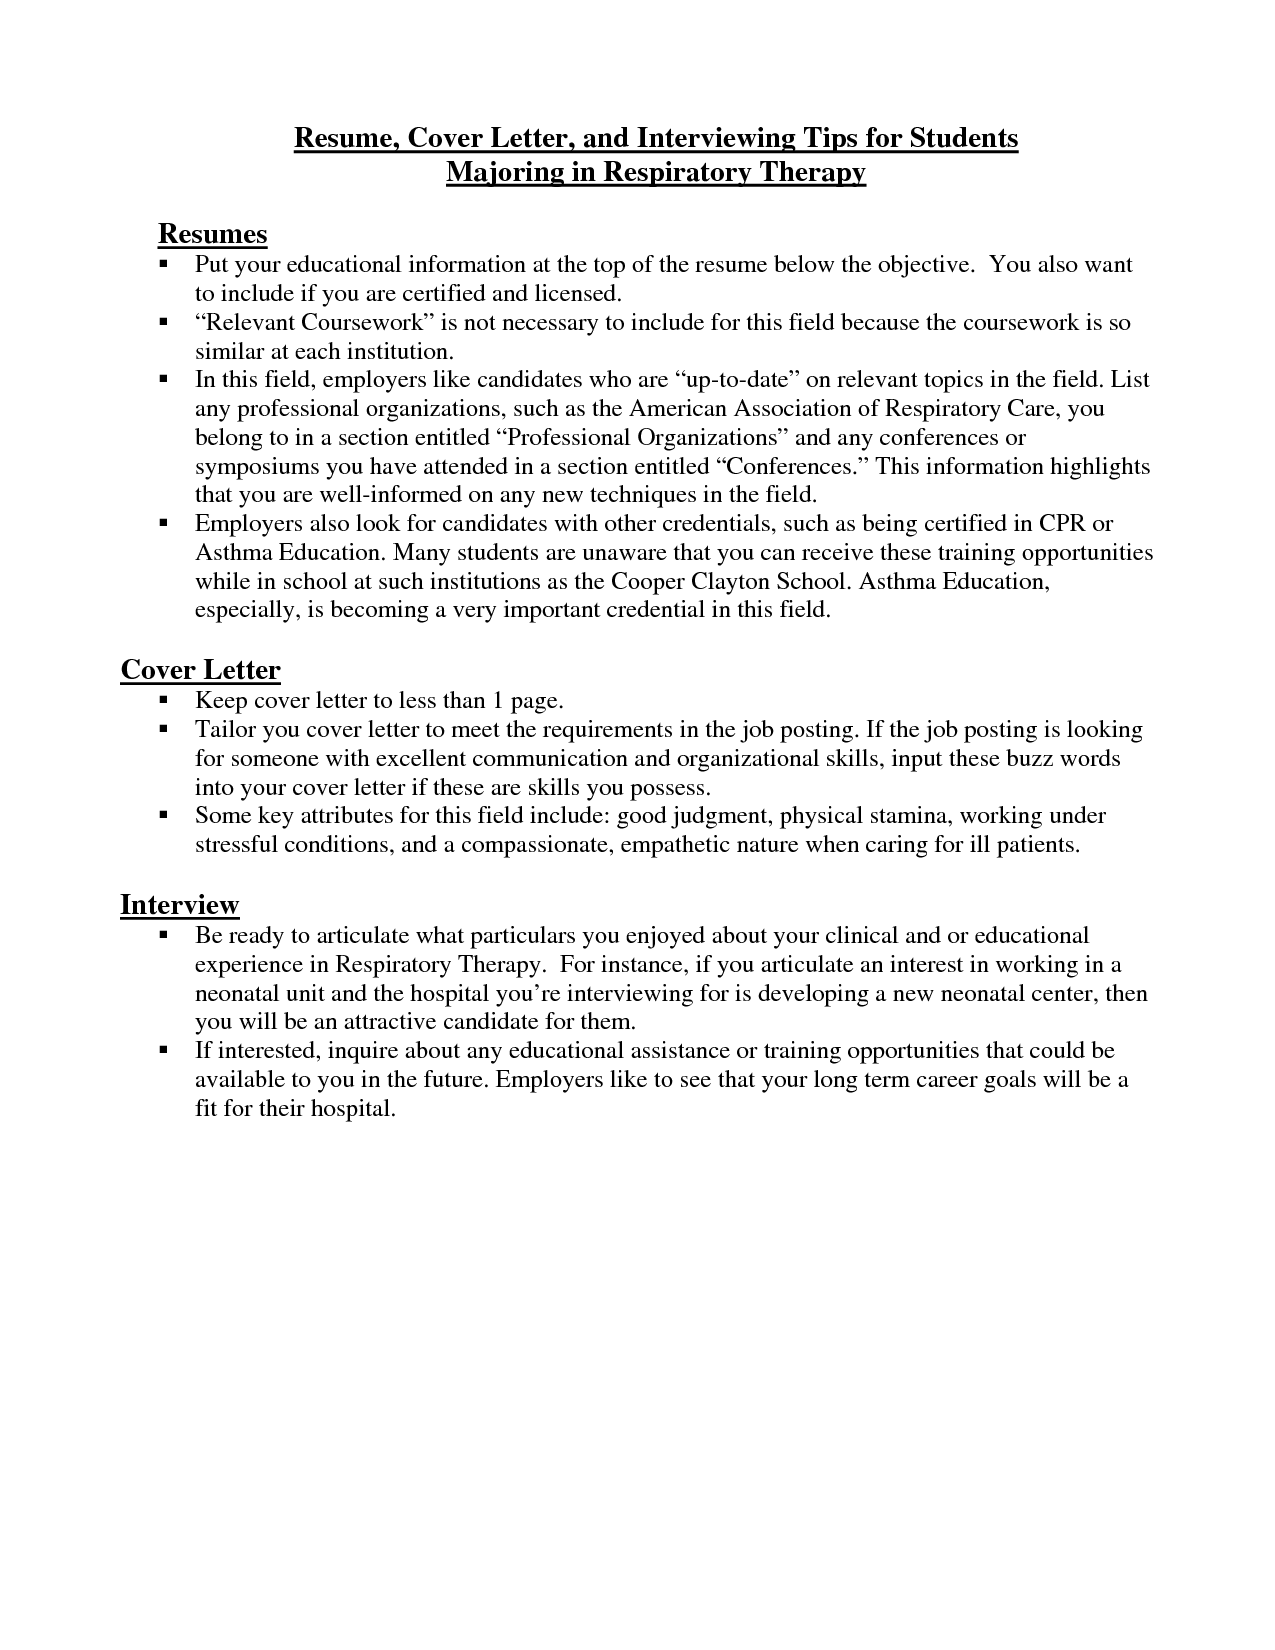 respiratory therapist cover letter resume cover letter and interviewing tips for students majoring